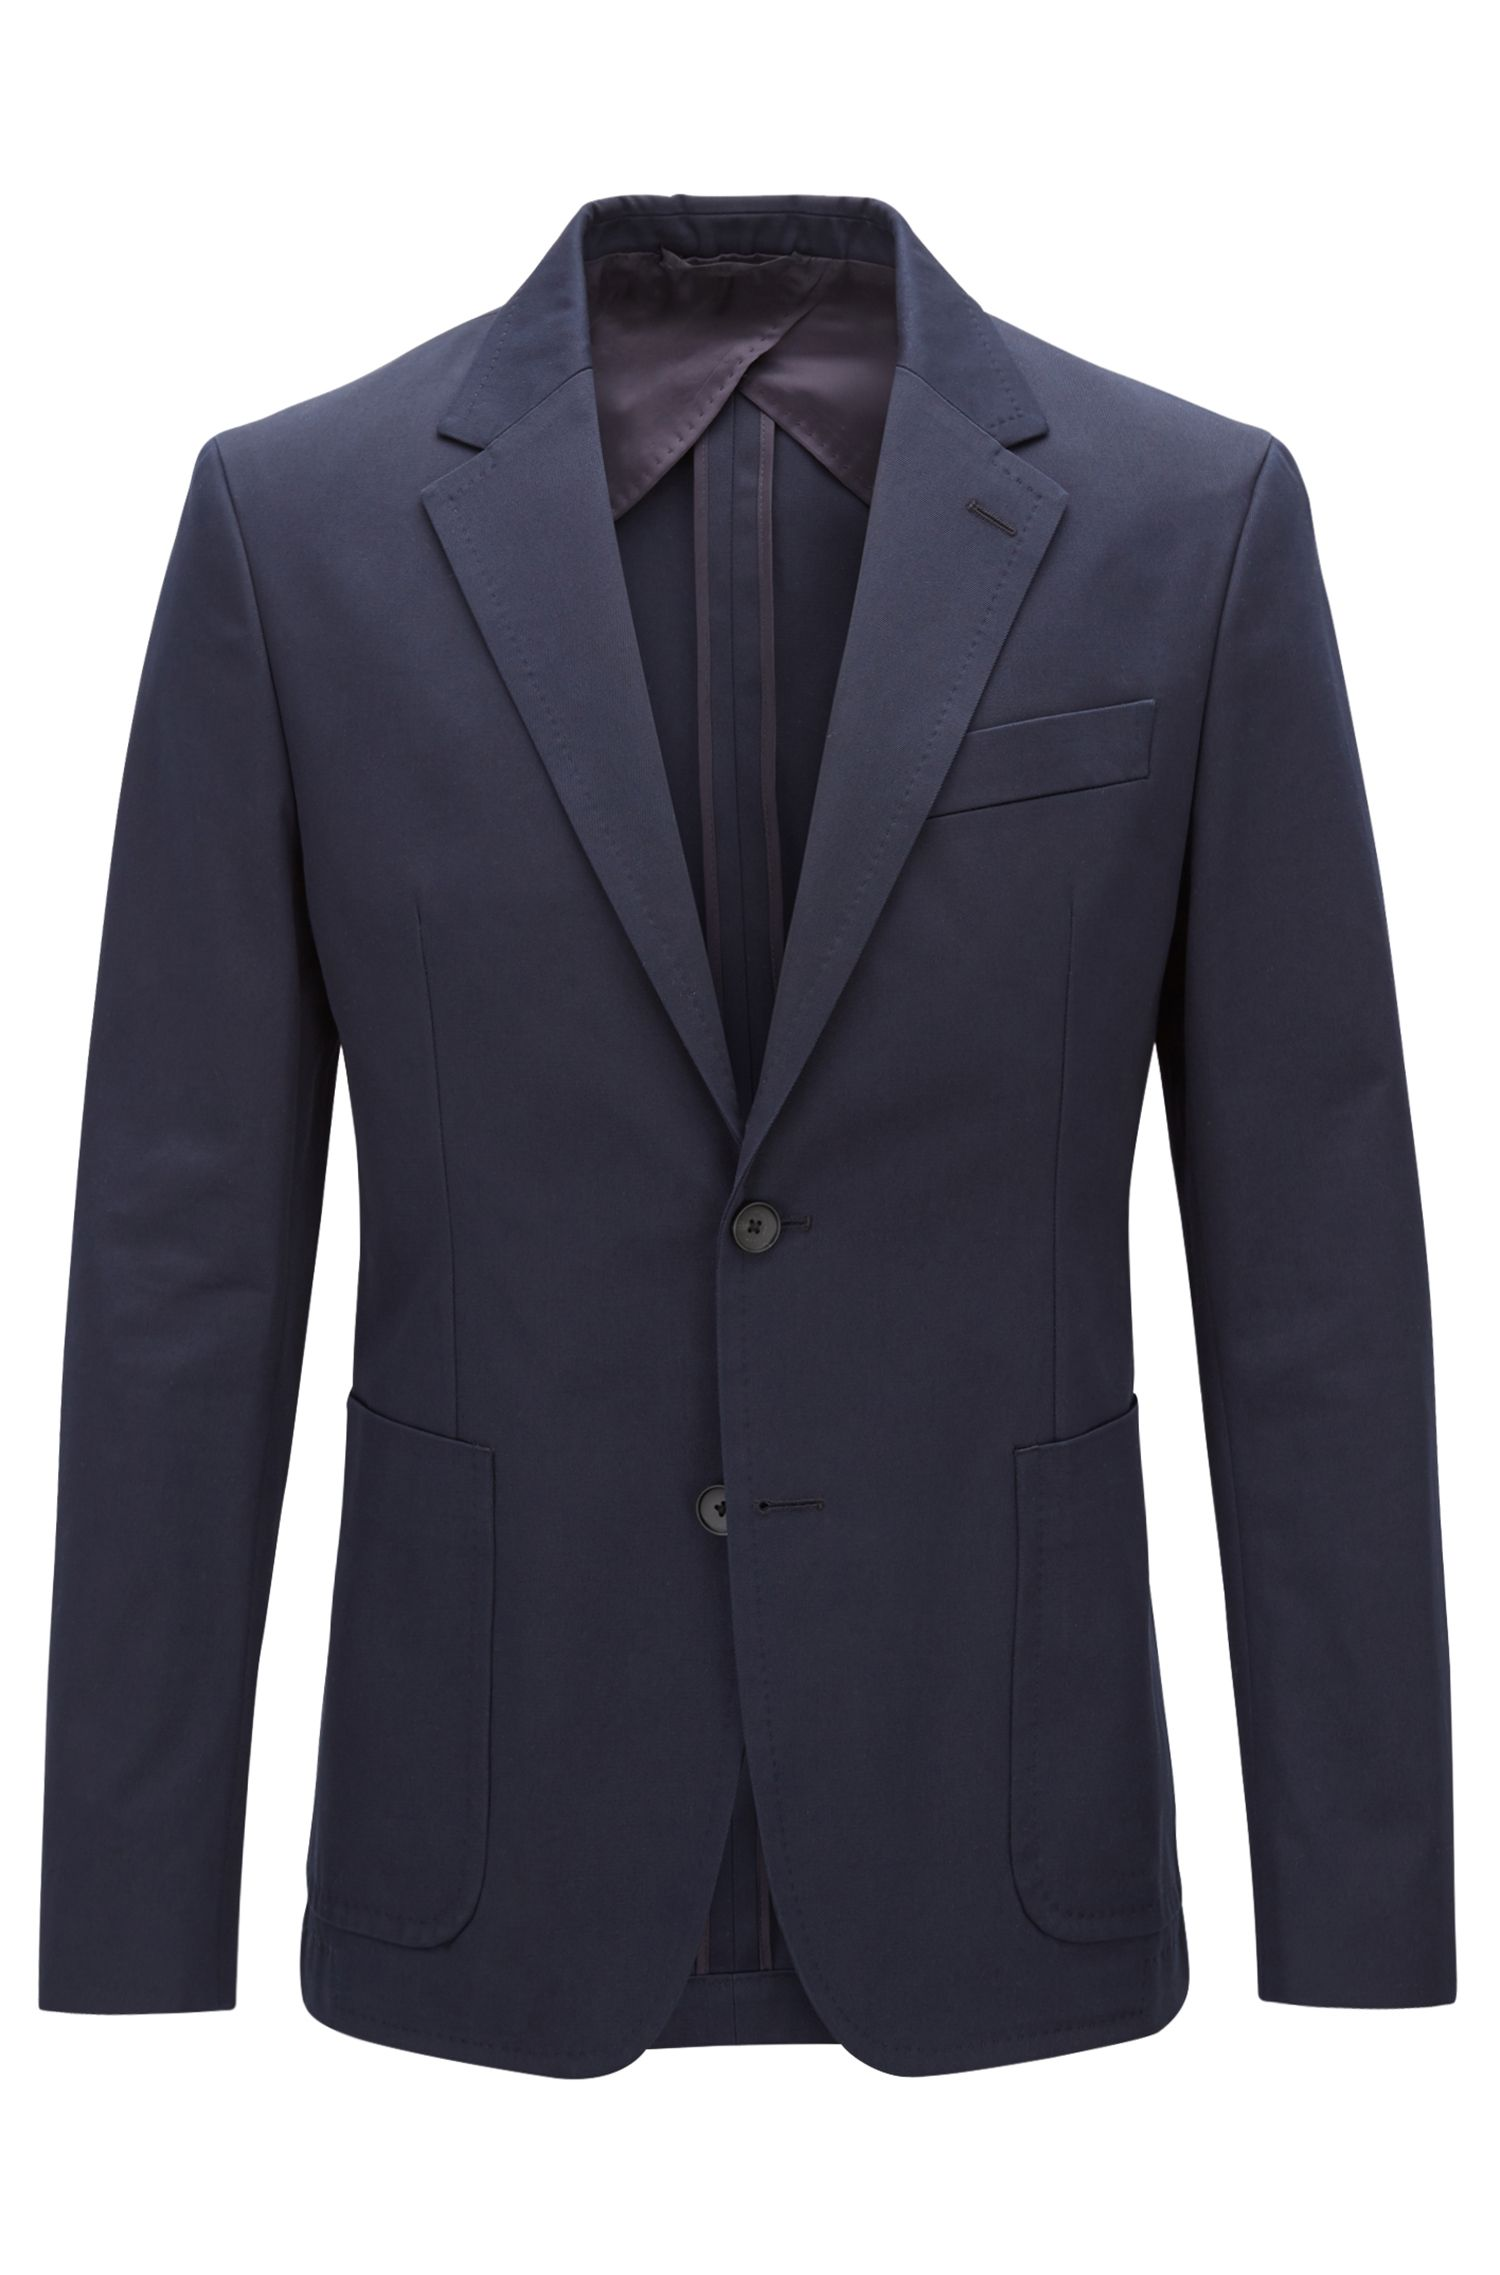 Blazer slim fit in puro cotone con tasche applicate